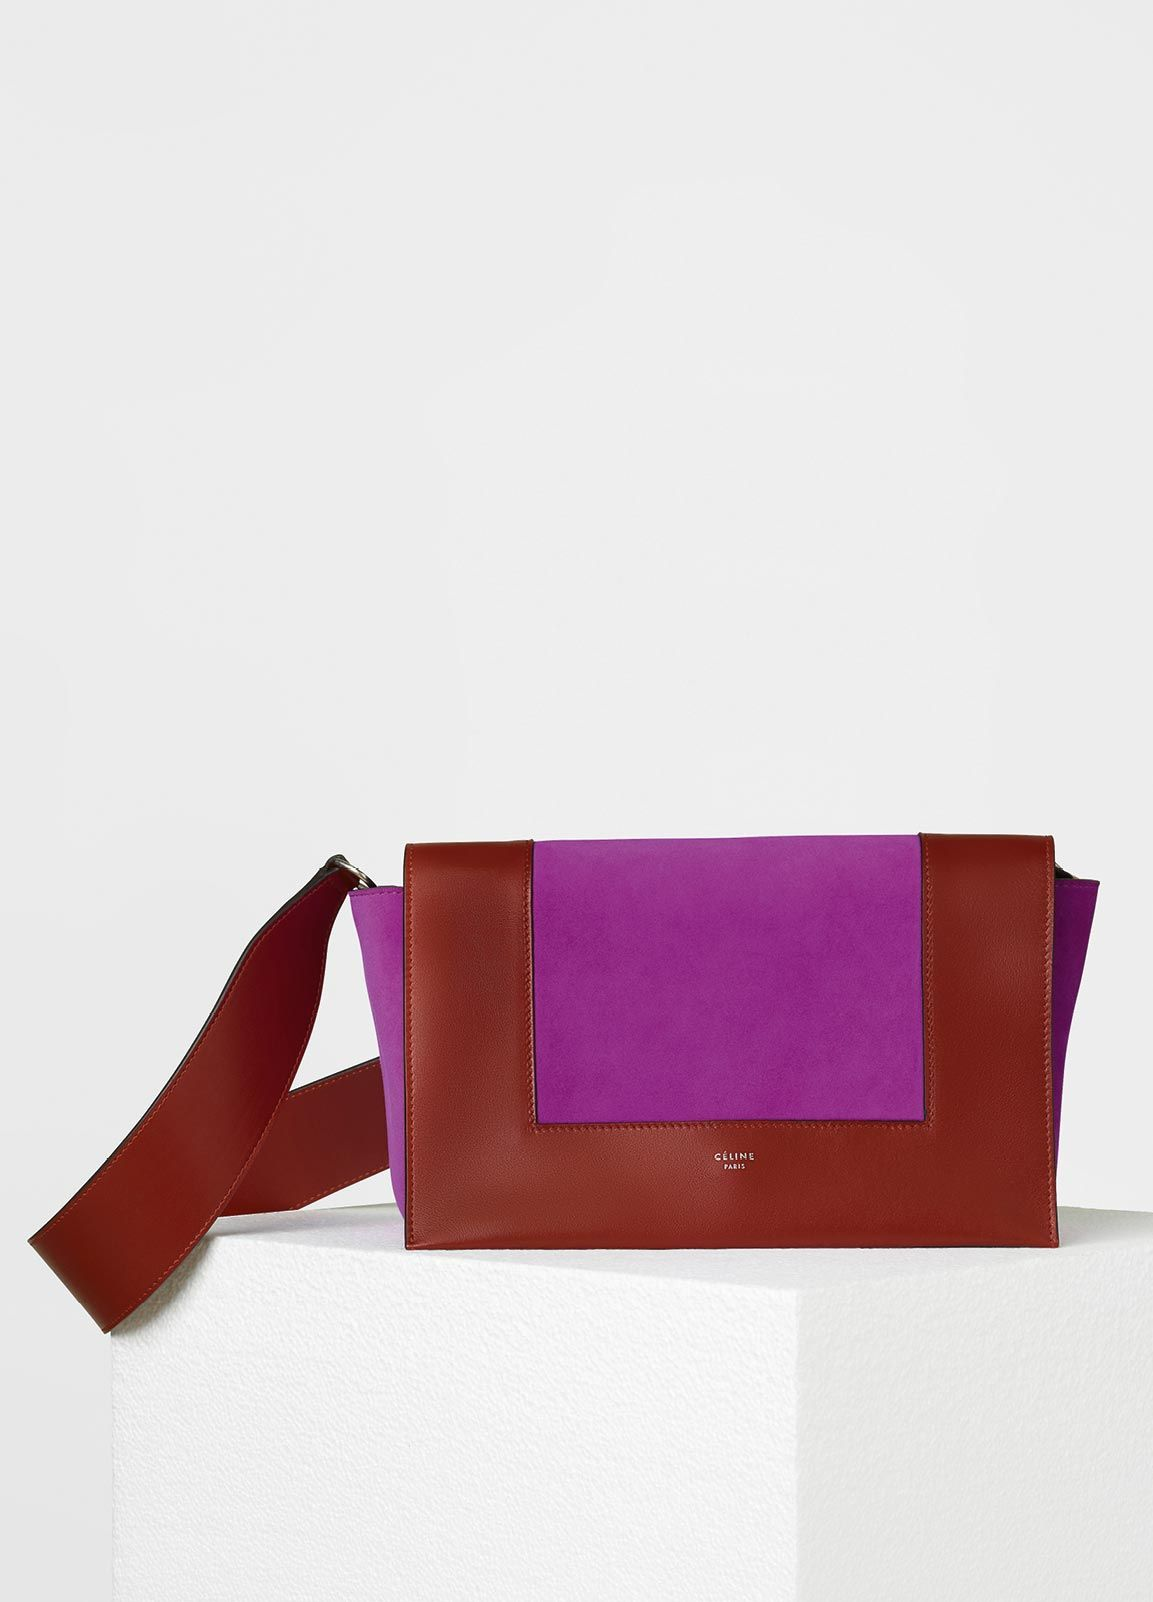 CÉLINE MEDIUM FRAME SHOULDER BAG IN BURNT RED AND MAGENTA SUPERSOFT  CALFSKIN AND SUEDE CALFSKIN a3f51df41a20e